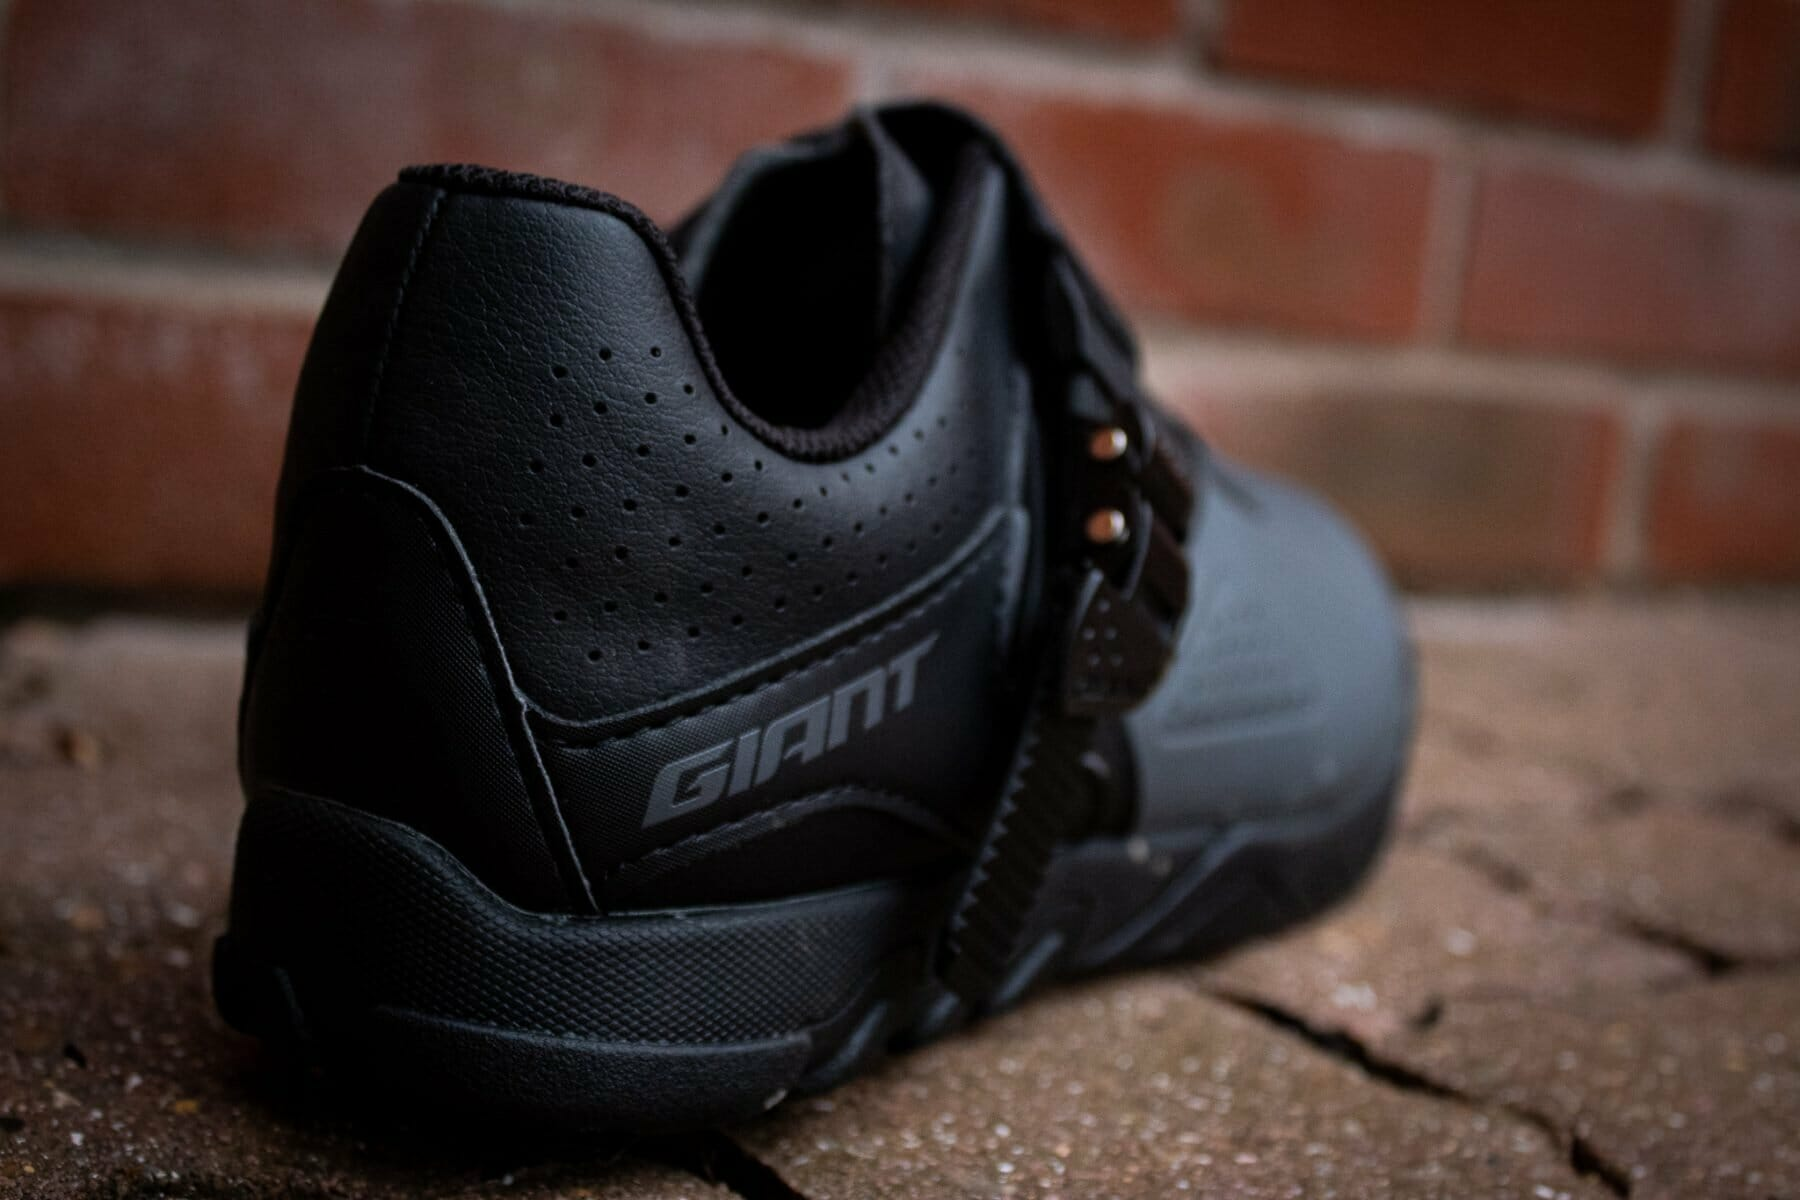 Giant Line Trail Shoes Review